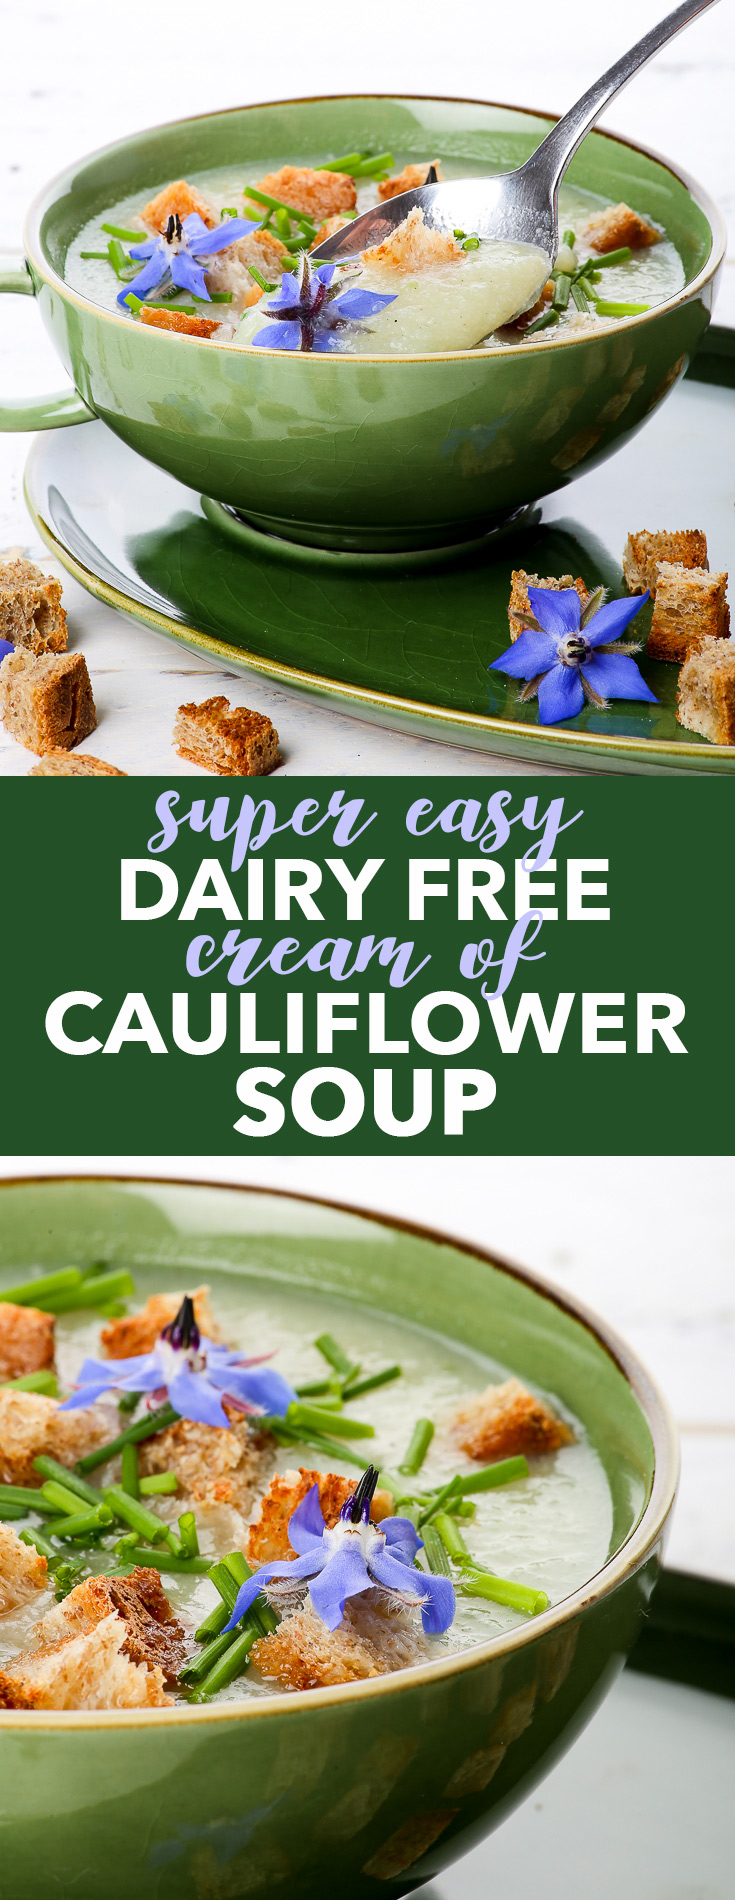 Super Easy Dairy Free Cream of Cauliflower Soup {gluten, dairy, egg, soy, nut & sugar free, vegan, paleo} - This cream of cauliflower soup is super easy and quick to prepare, requiring only 25 minutes. It's gluten and dairy free, healthy and filling, and captures perfectly the meaning of comfort food. The ideal prepare-in-advance lunch or quick dinner.